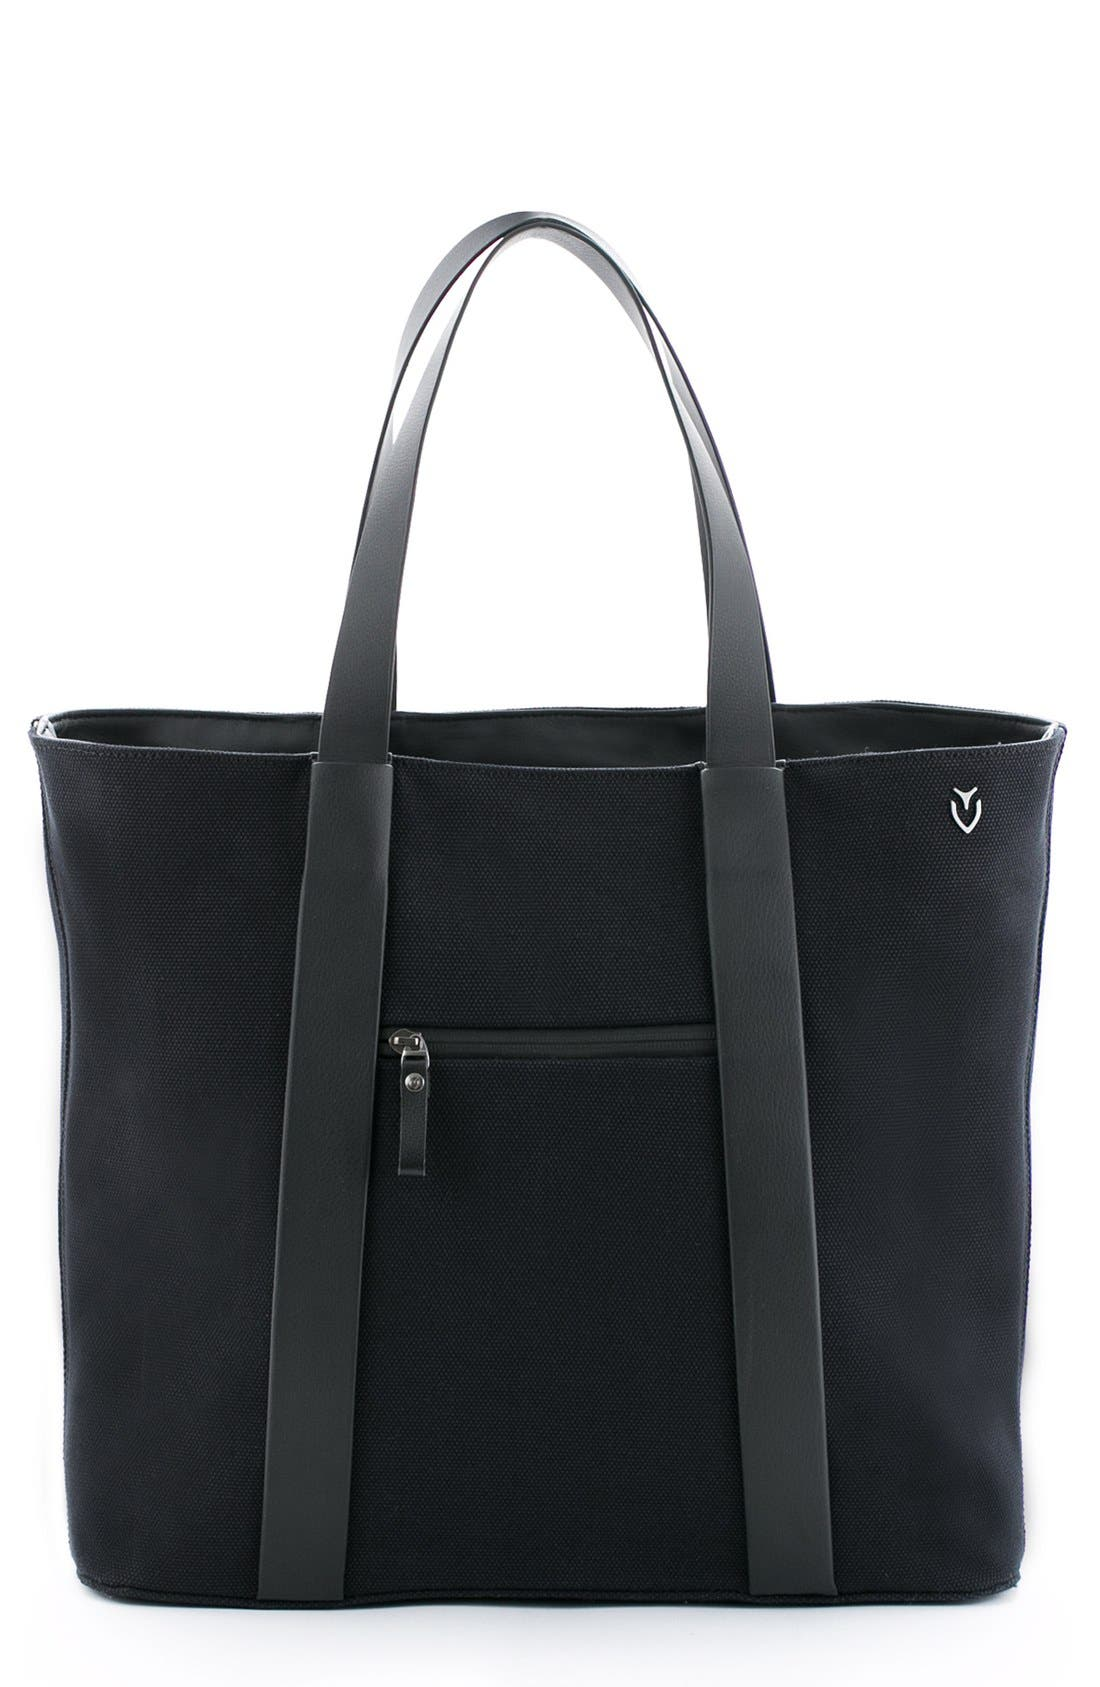 'Signature' Leather Tote Bag,                         Main,                         color, 001